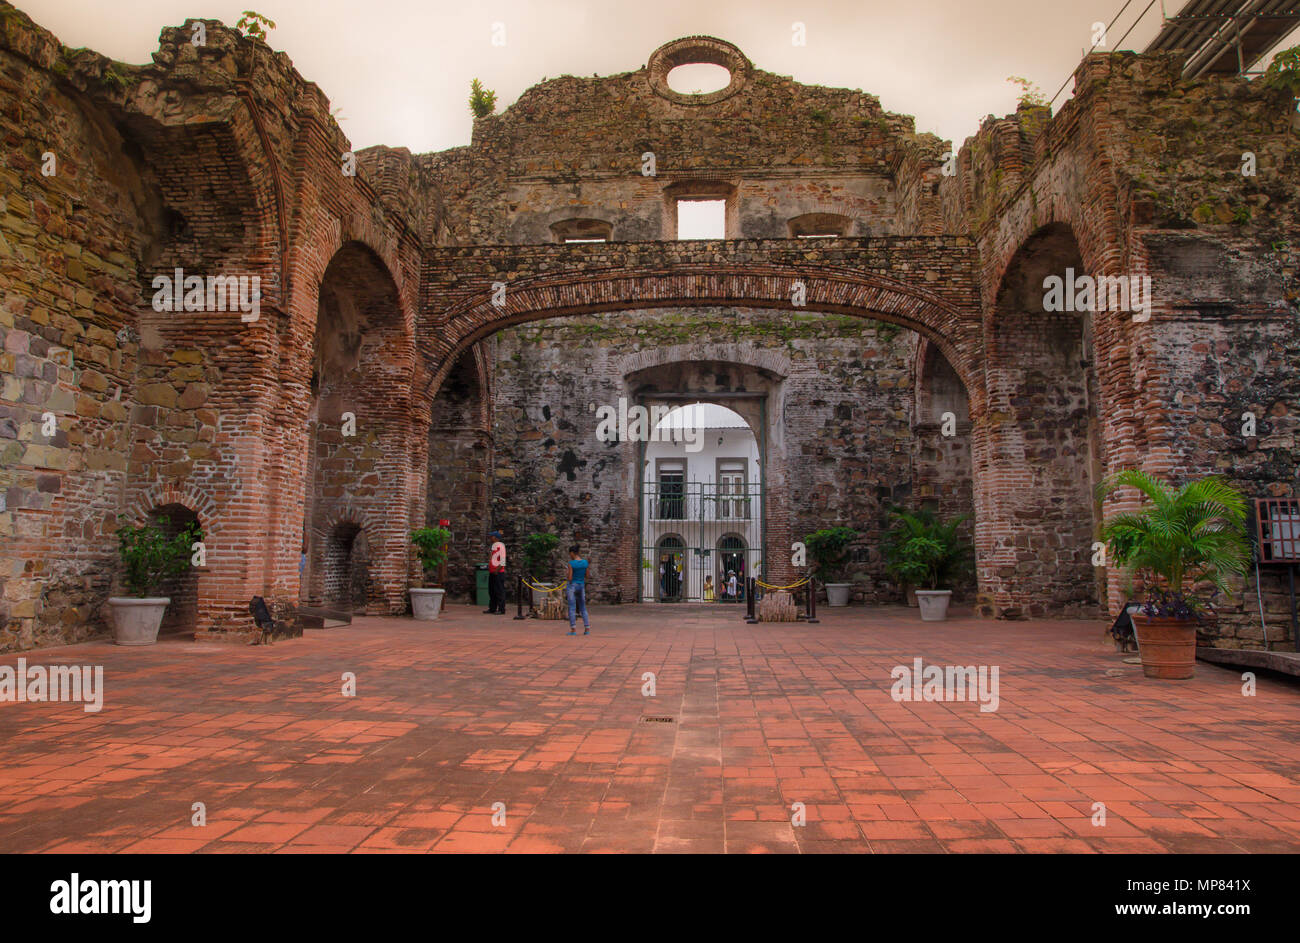 Unidentified people walking inside of ruins of the Jesuits Convent. Part of Casco Antiguo's UNESCO patrimony in old Panama city, which was destroyed by a fire in the XVIII century - Stock Image